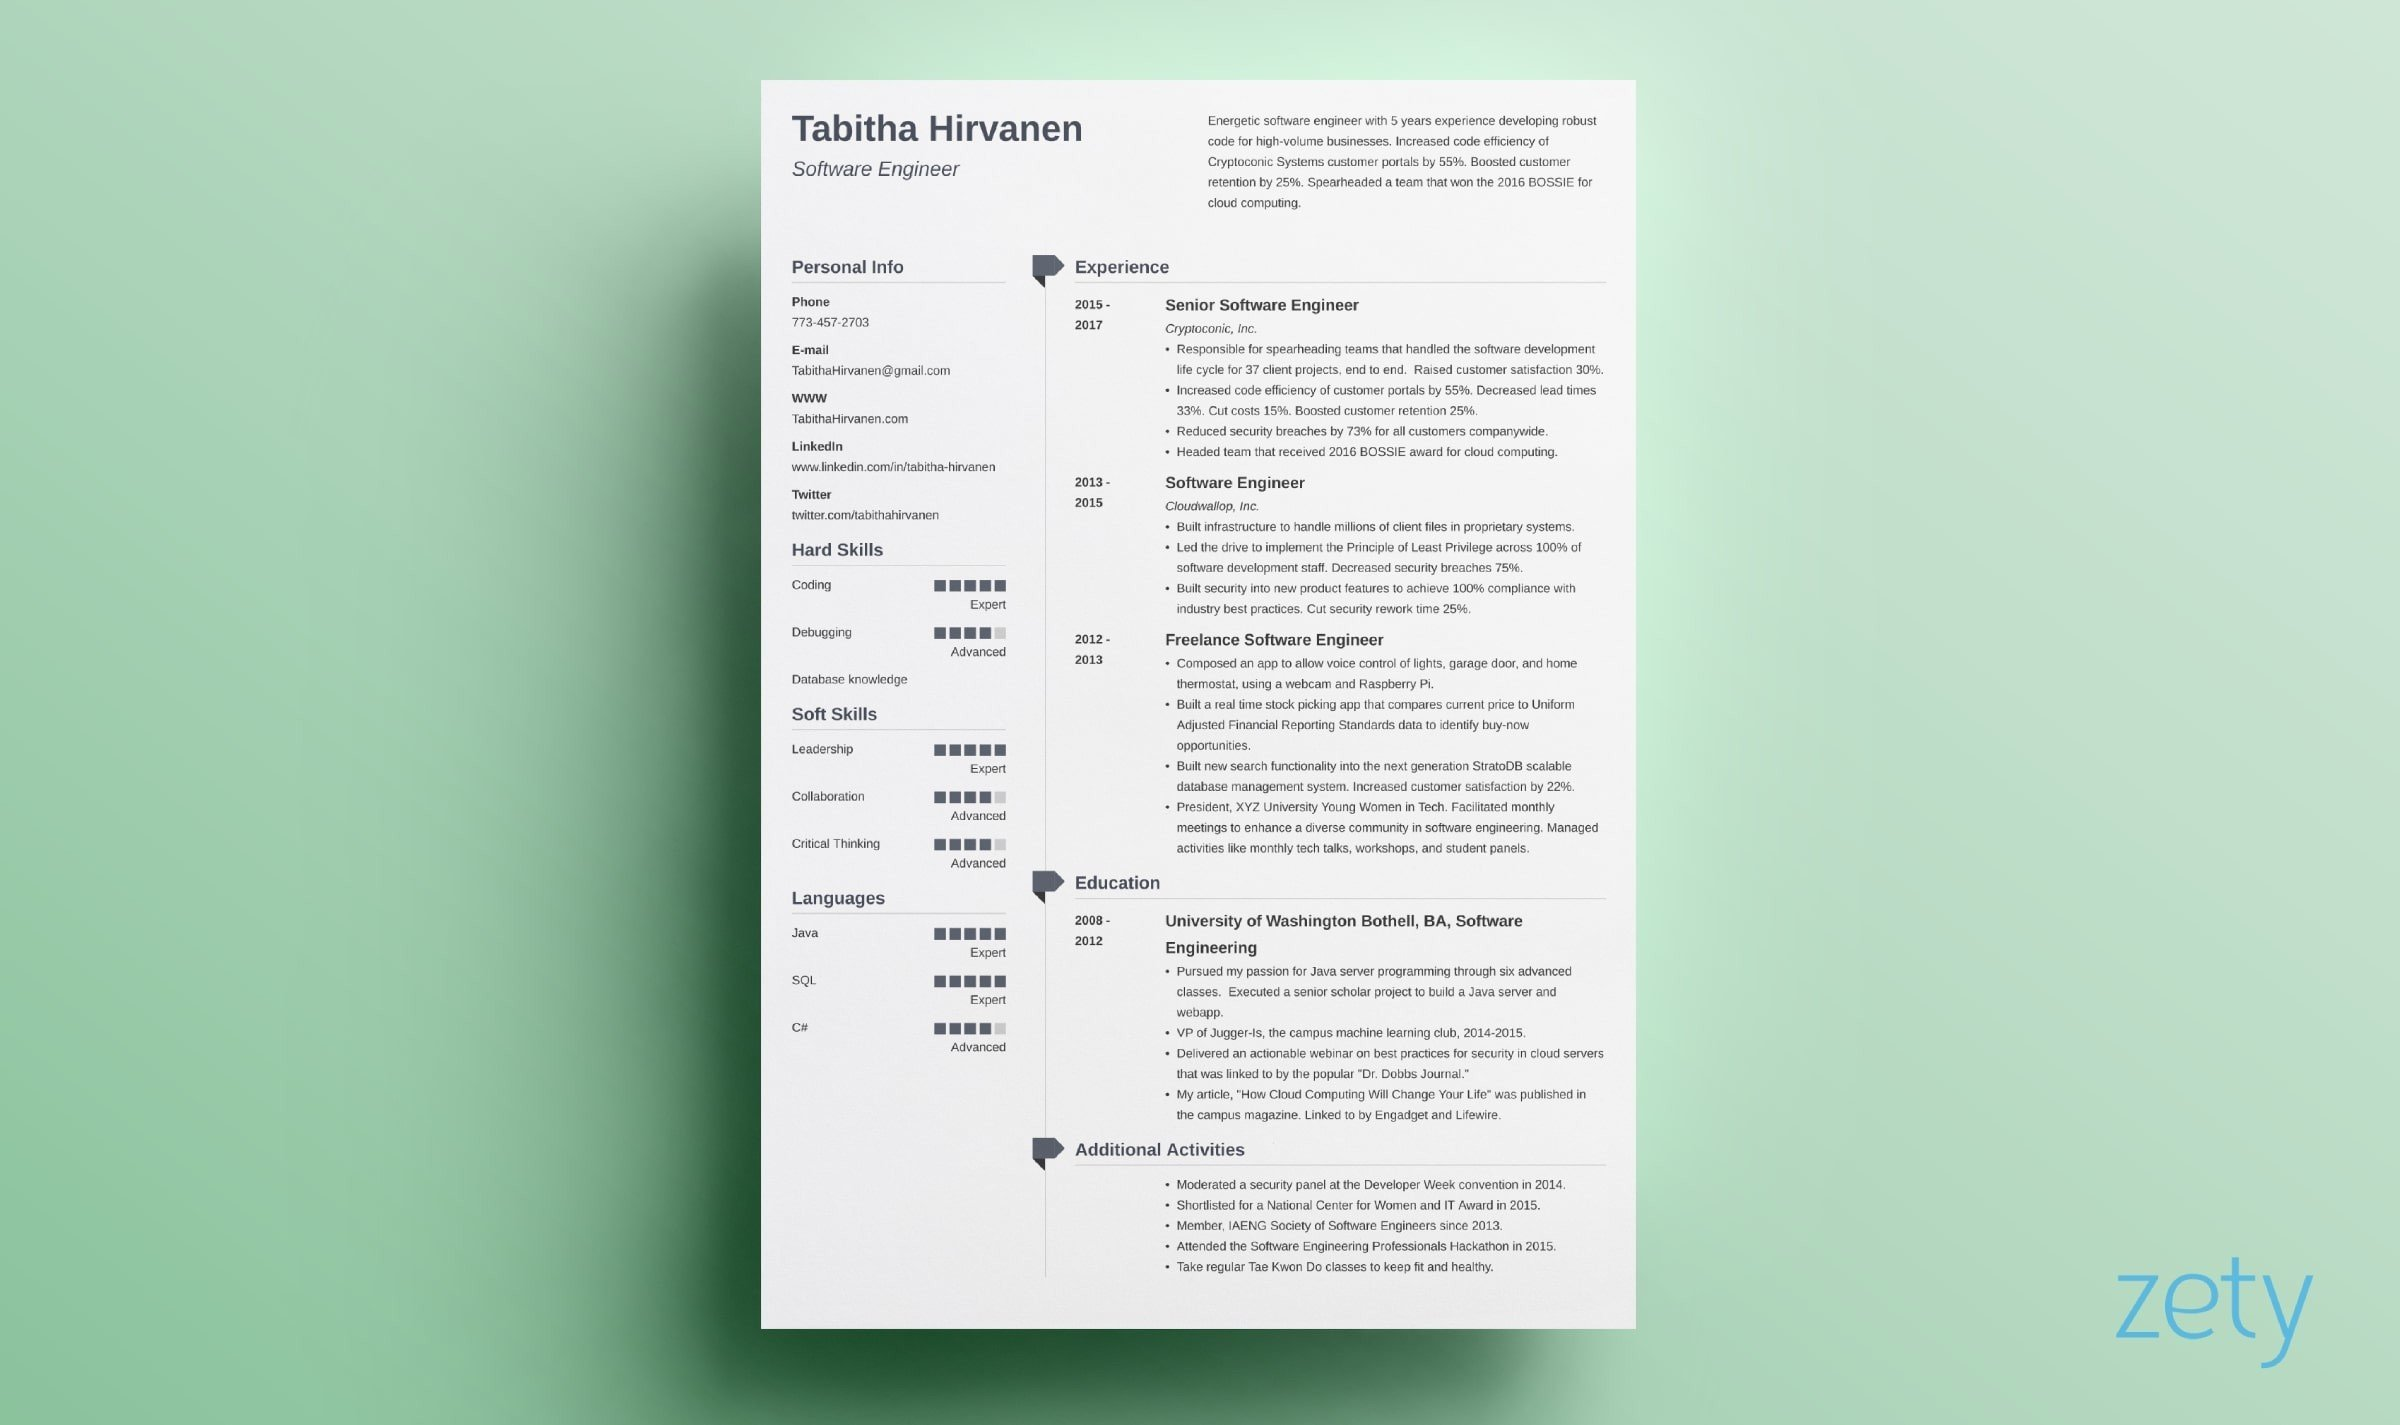 creative resume templates examples the muse writing services cost fake reddit word format Resume The Muse Resume Templates